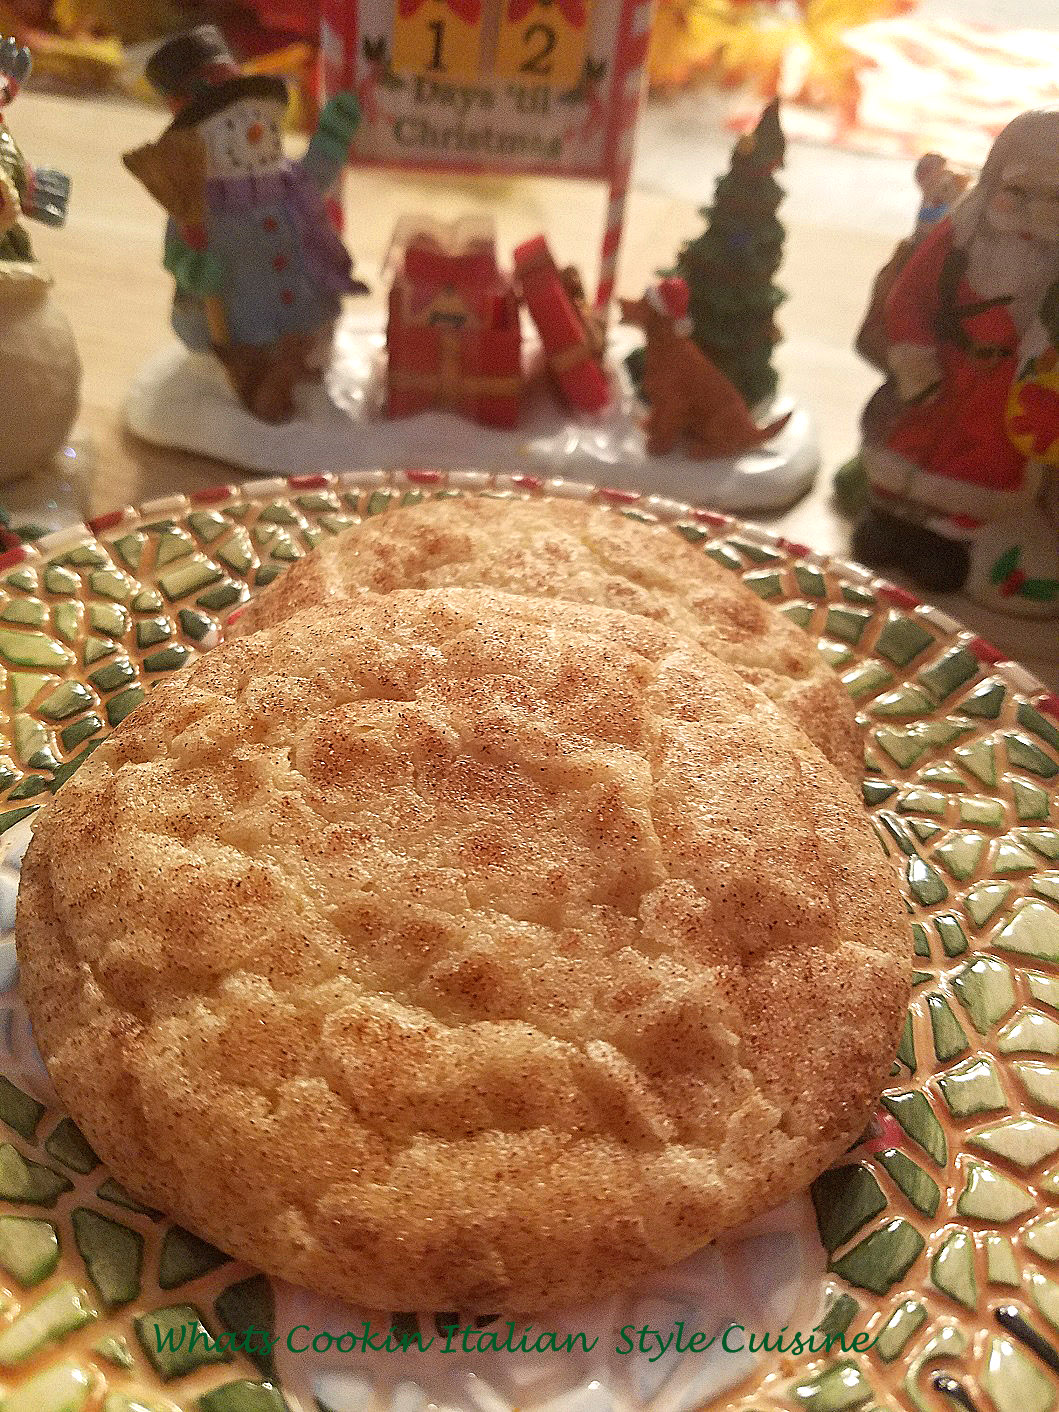 these delightful cinnamon cookies are buttery and rich in flavor a childhood treat  this is a cinnamon cookie called snickerdoodle cookies. A childhood favorite cinnamon and sugar cookie. Easy to make and pantry ingredients. Cinnamon and sugar cookies or snickerdoodles are a famous cookie known worldwide